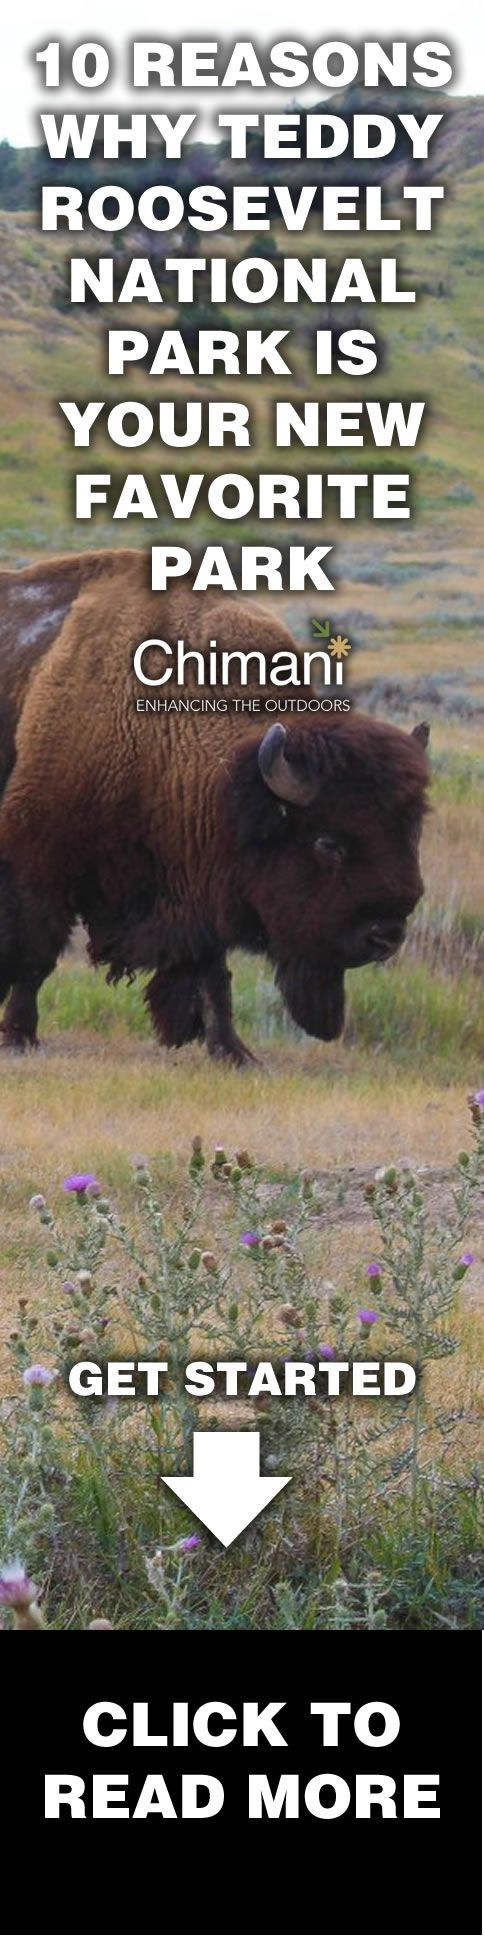 10 Reasons Why Teddy Roosevelt is Your New Favorite Park - Chimani sought help from its team of ambassadors to photograph, video, and write about what they love about their favorite national park. Below is from Callie Klinkmueller on Teddy Roosevelt National Park.